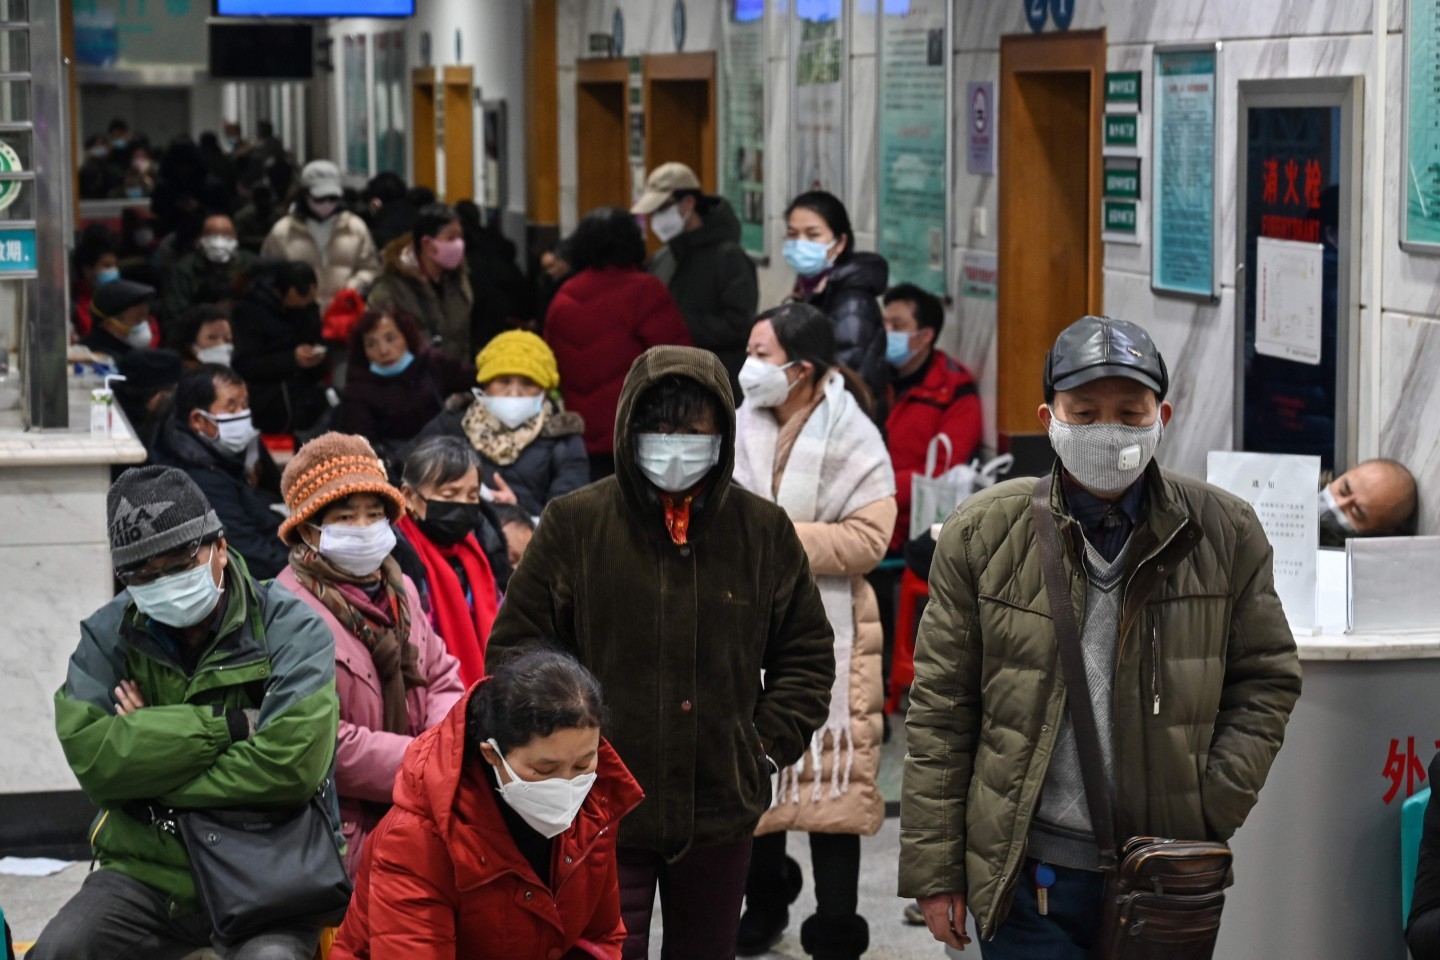 People wearing face masks to help stop the spread of a deadly virus which began in the city, wait for medical attention at Wuhan Red Cross Hospital in Wuhan on 25 January 2020. (Hector Retamal/AFP)